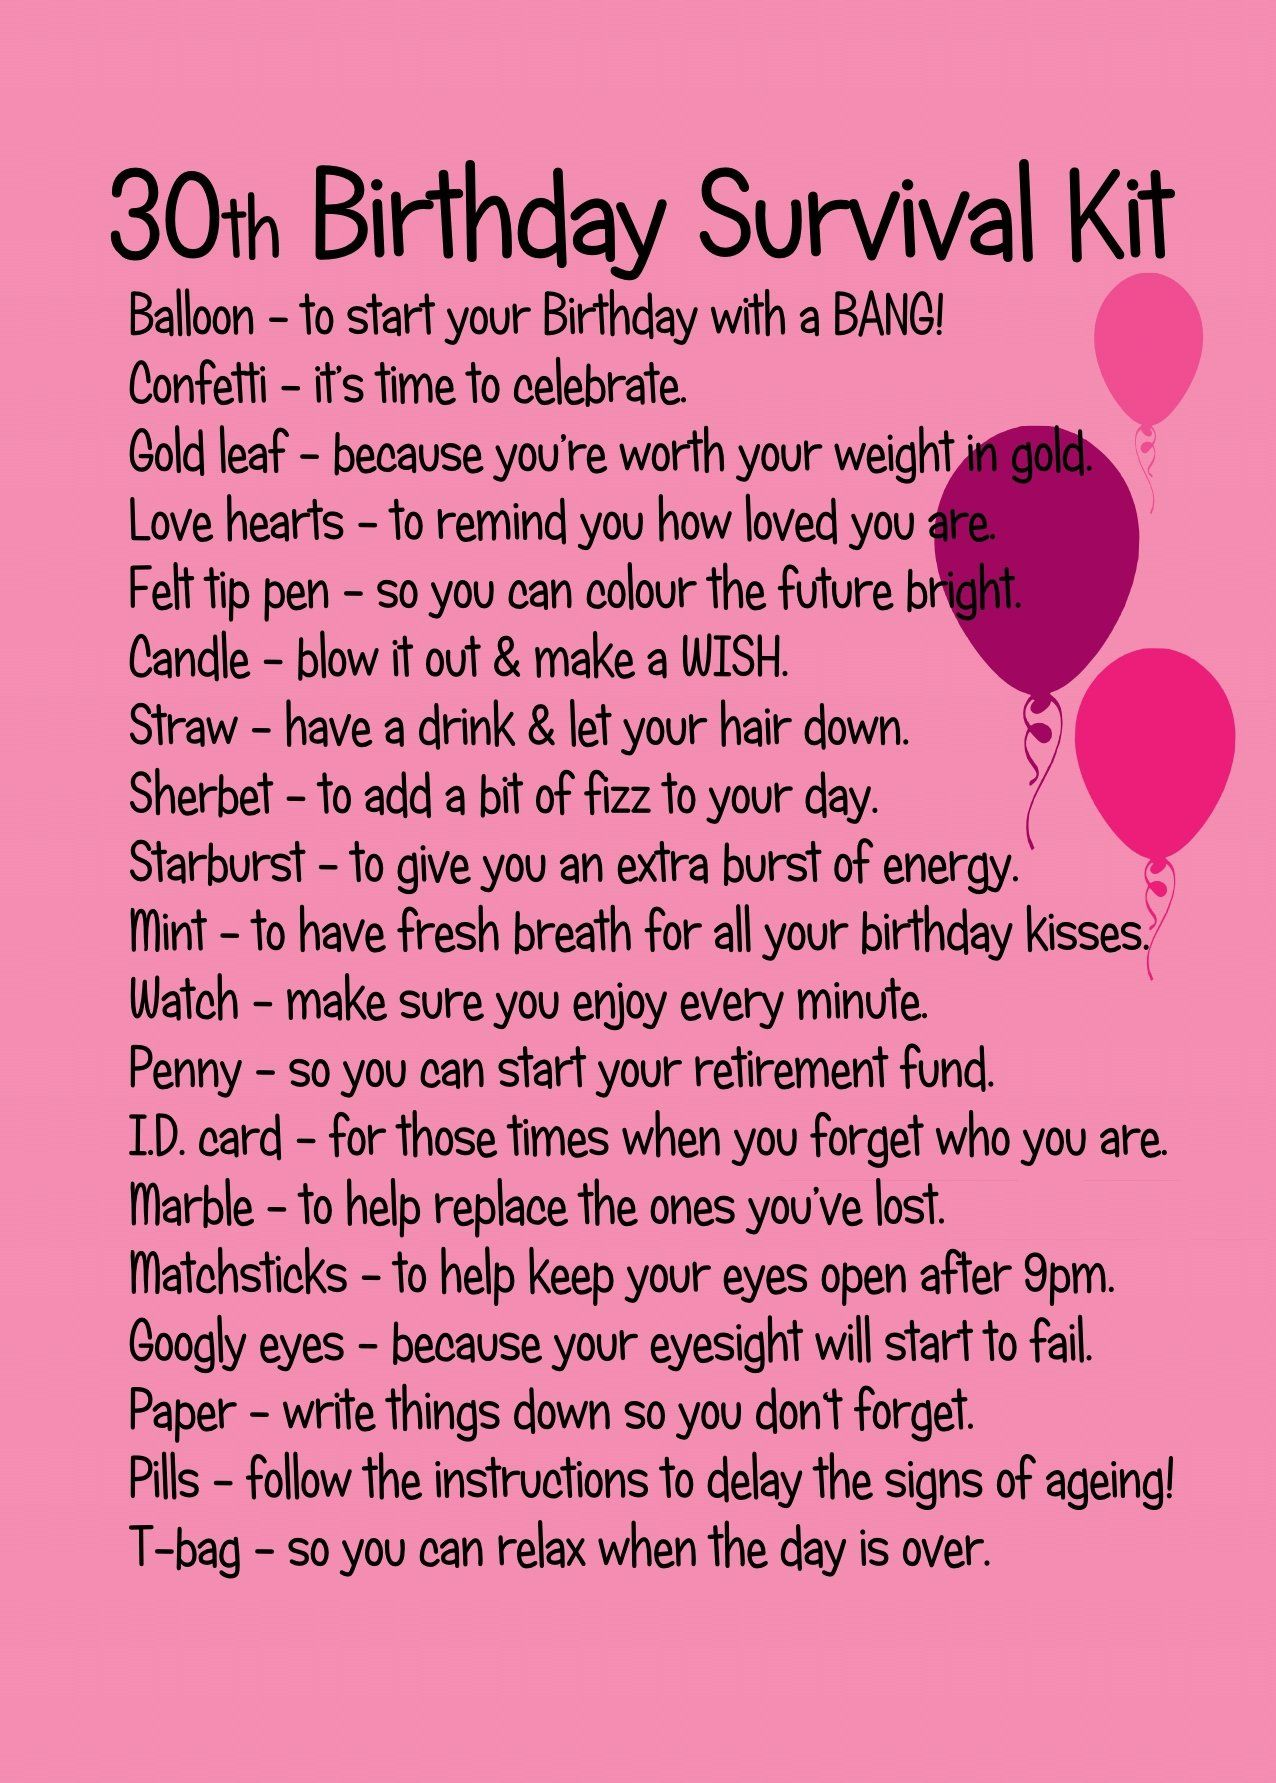 Things To Do For Your 30th Bday